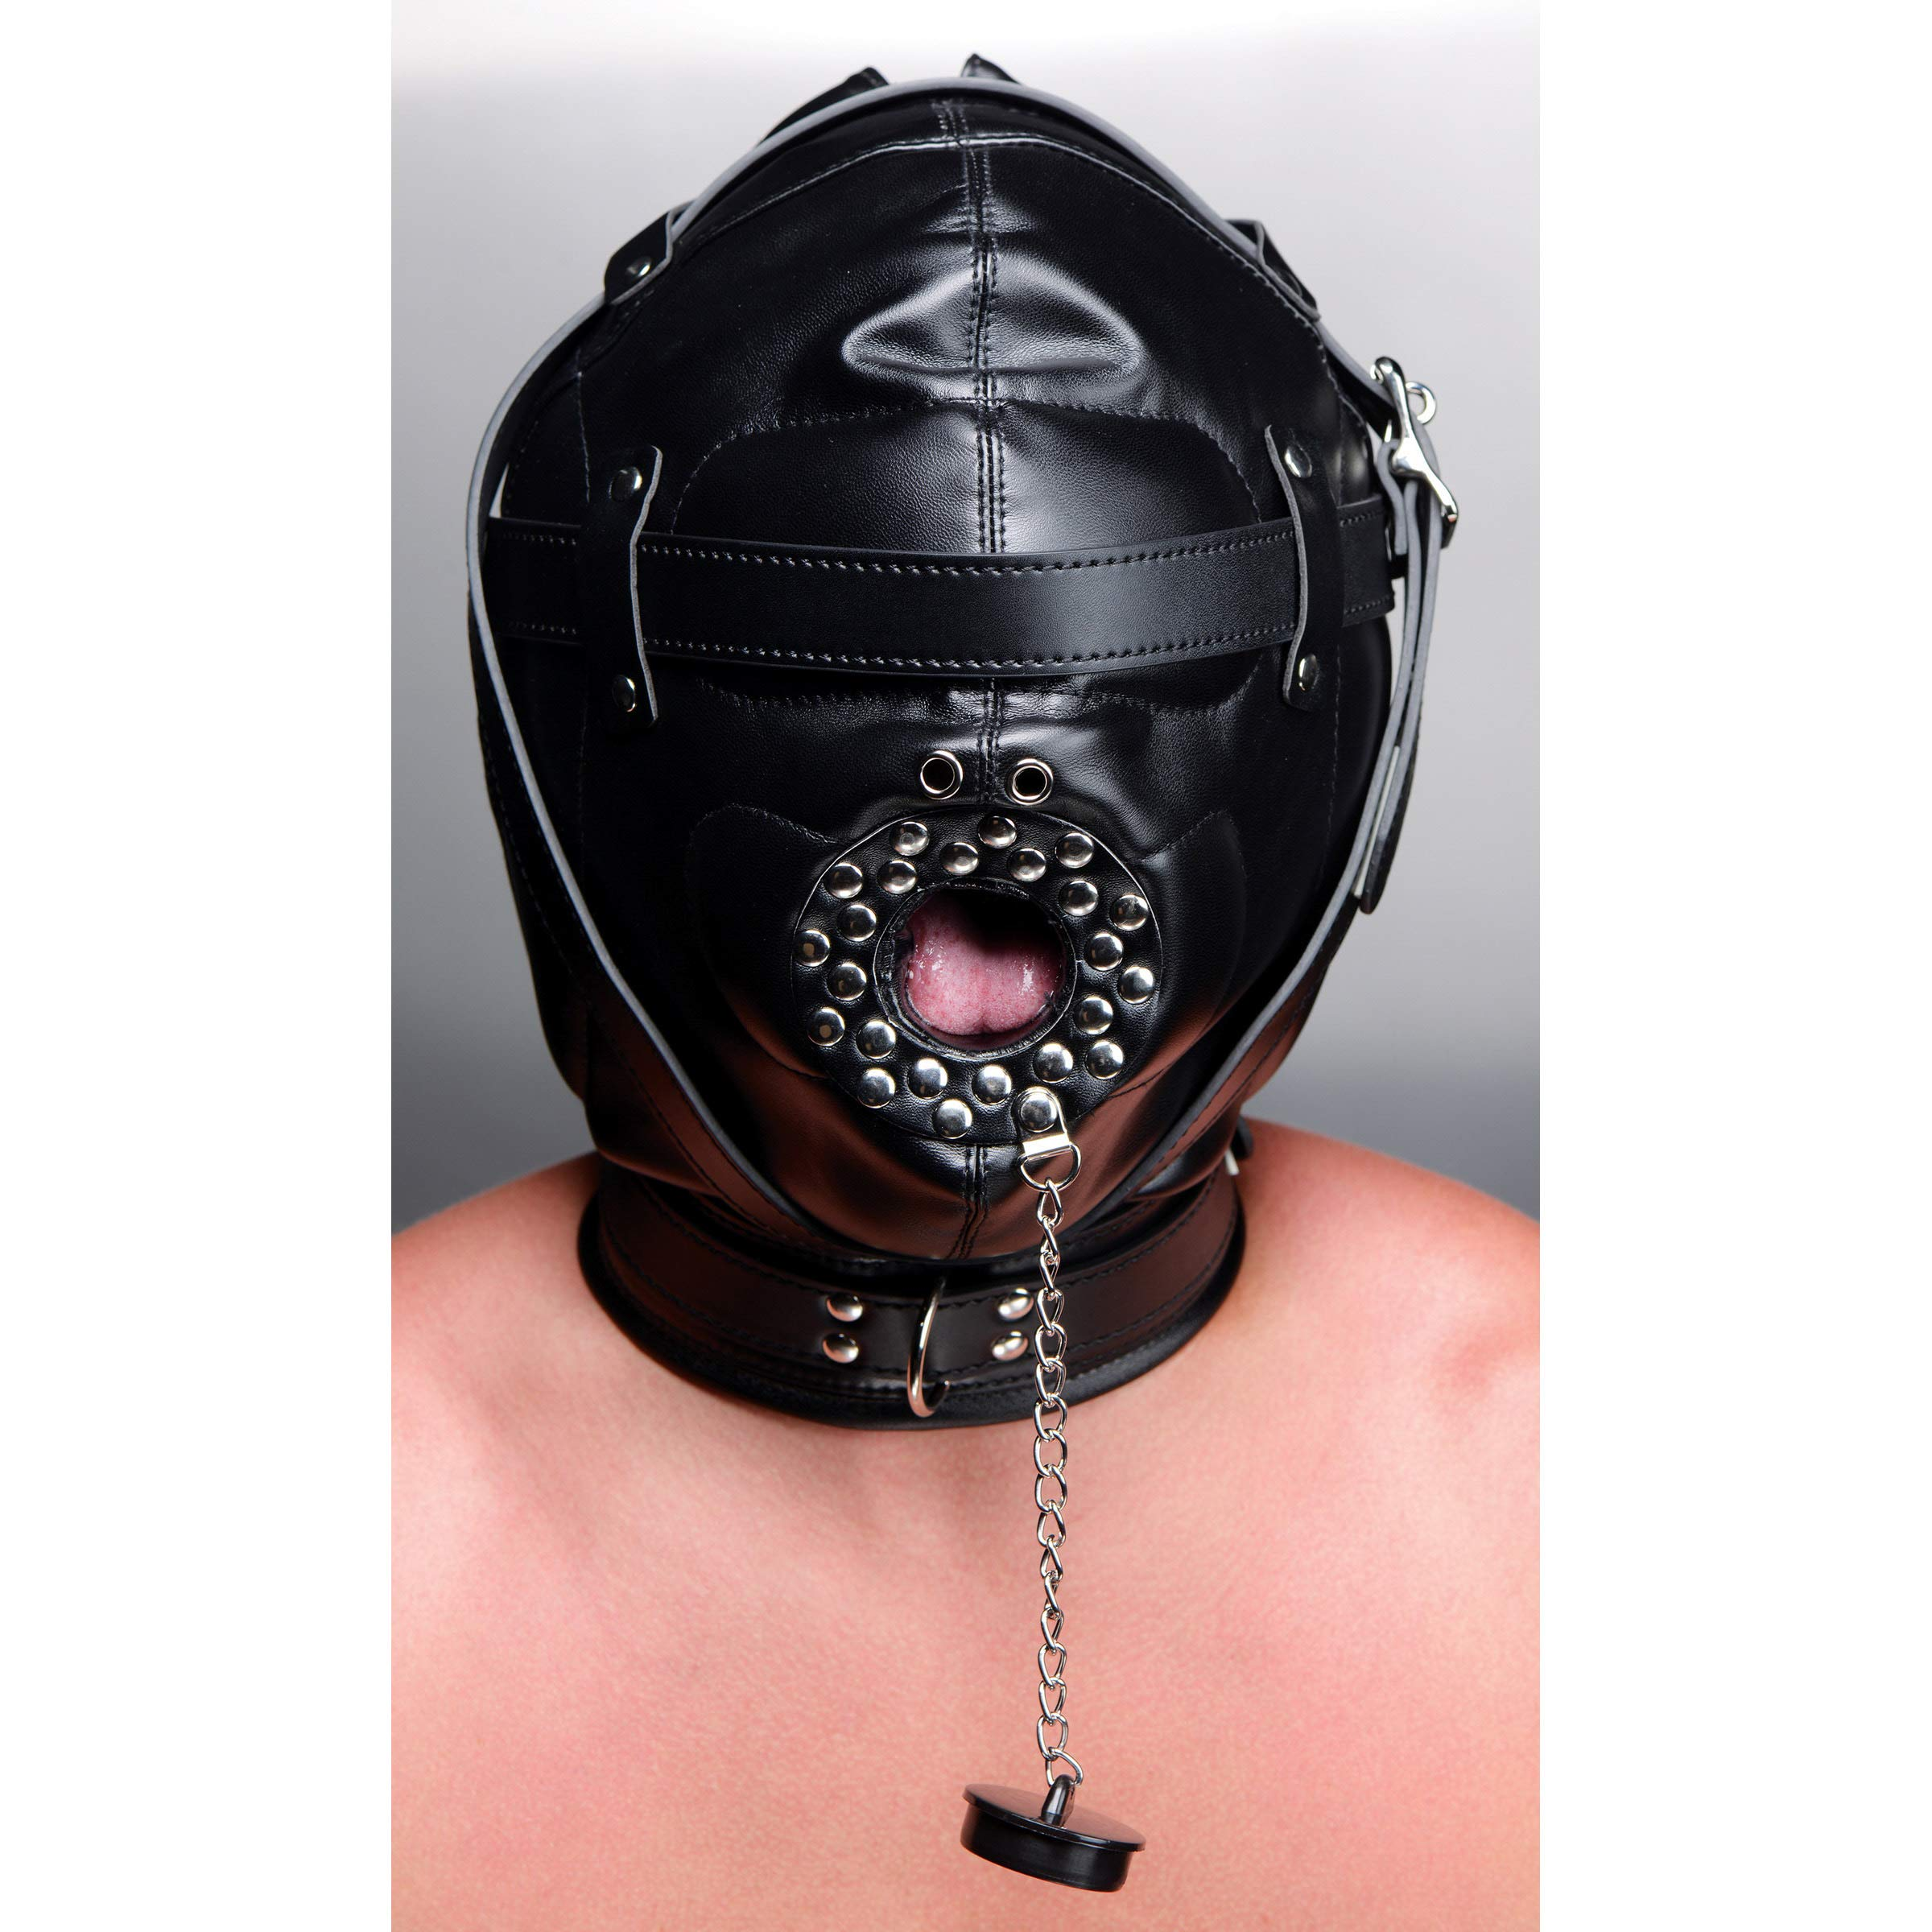 Strict Leather Sensory Deprivation Hood with Open Mouth Gag by Strict Leather